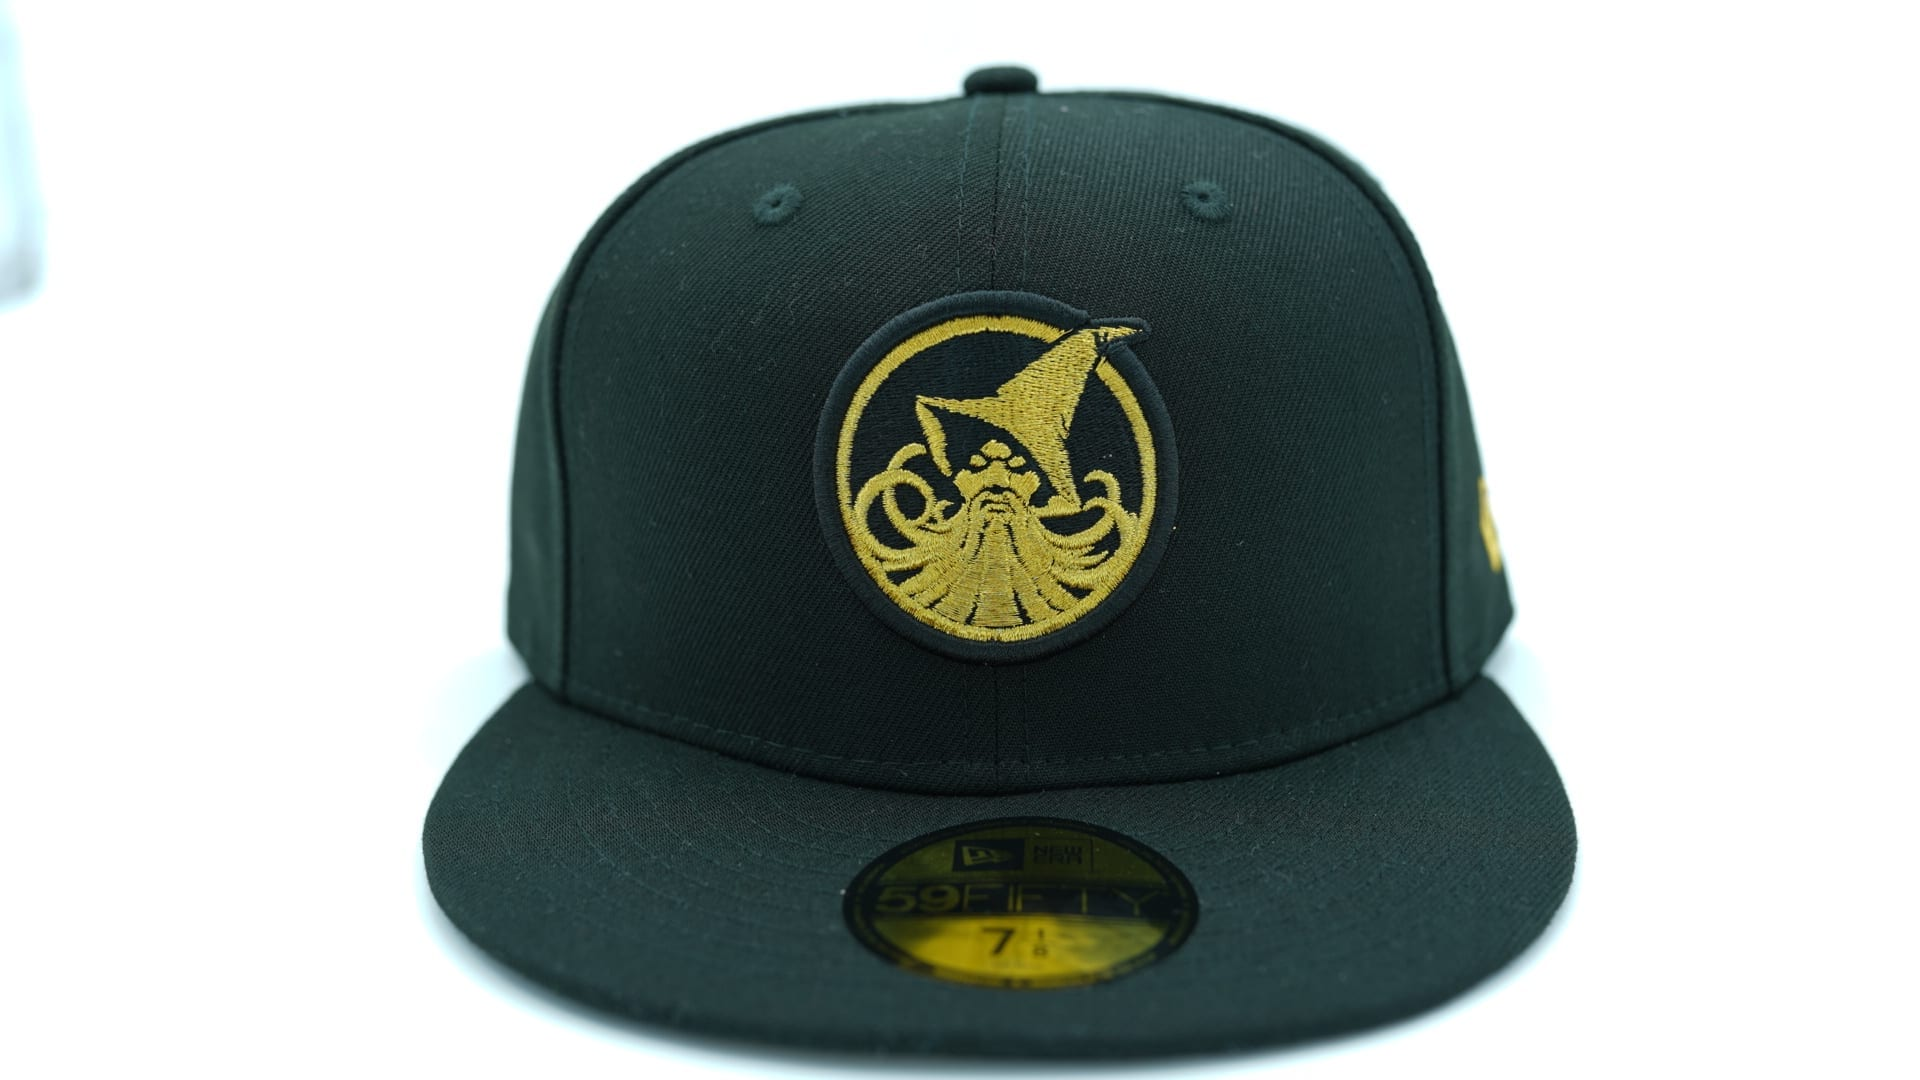 separation shoes 21104 8dce7 los angeles lakers change up low profile 59fifty fitted baseball cap new  era nba